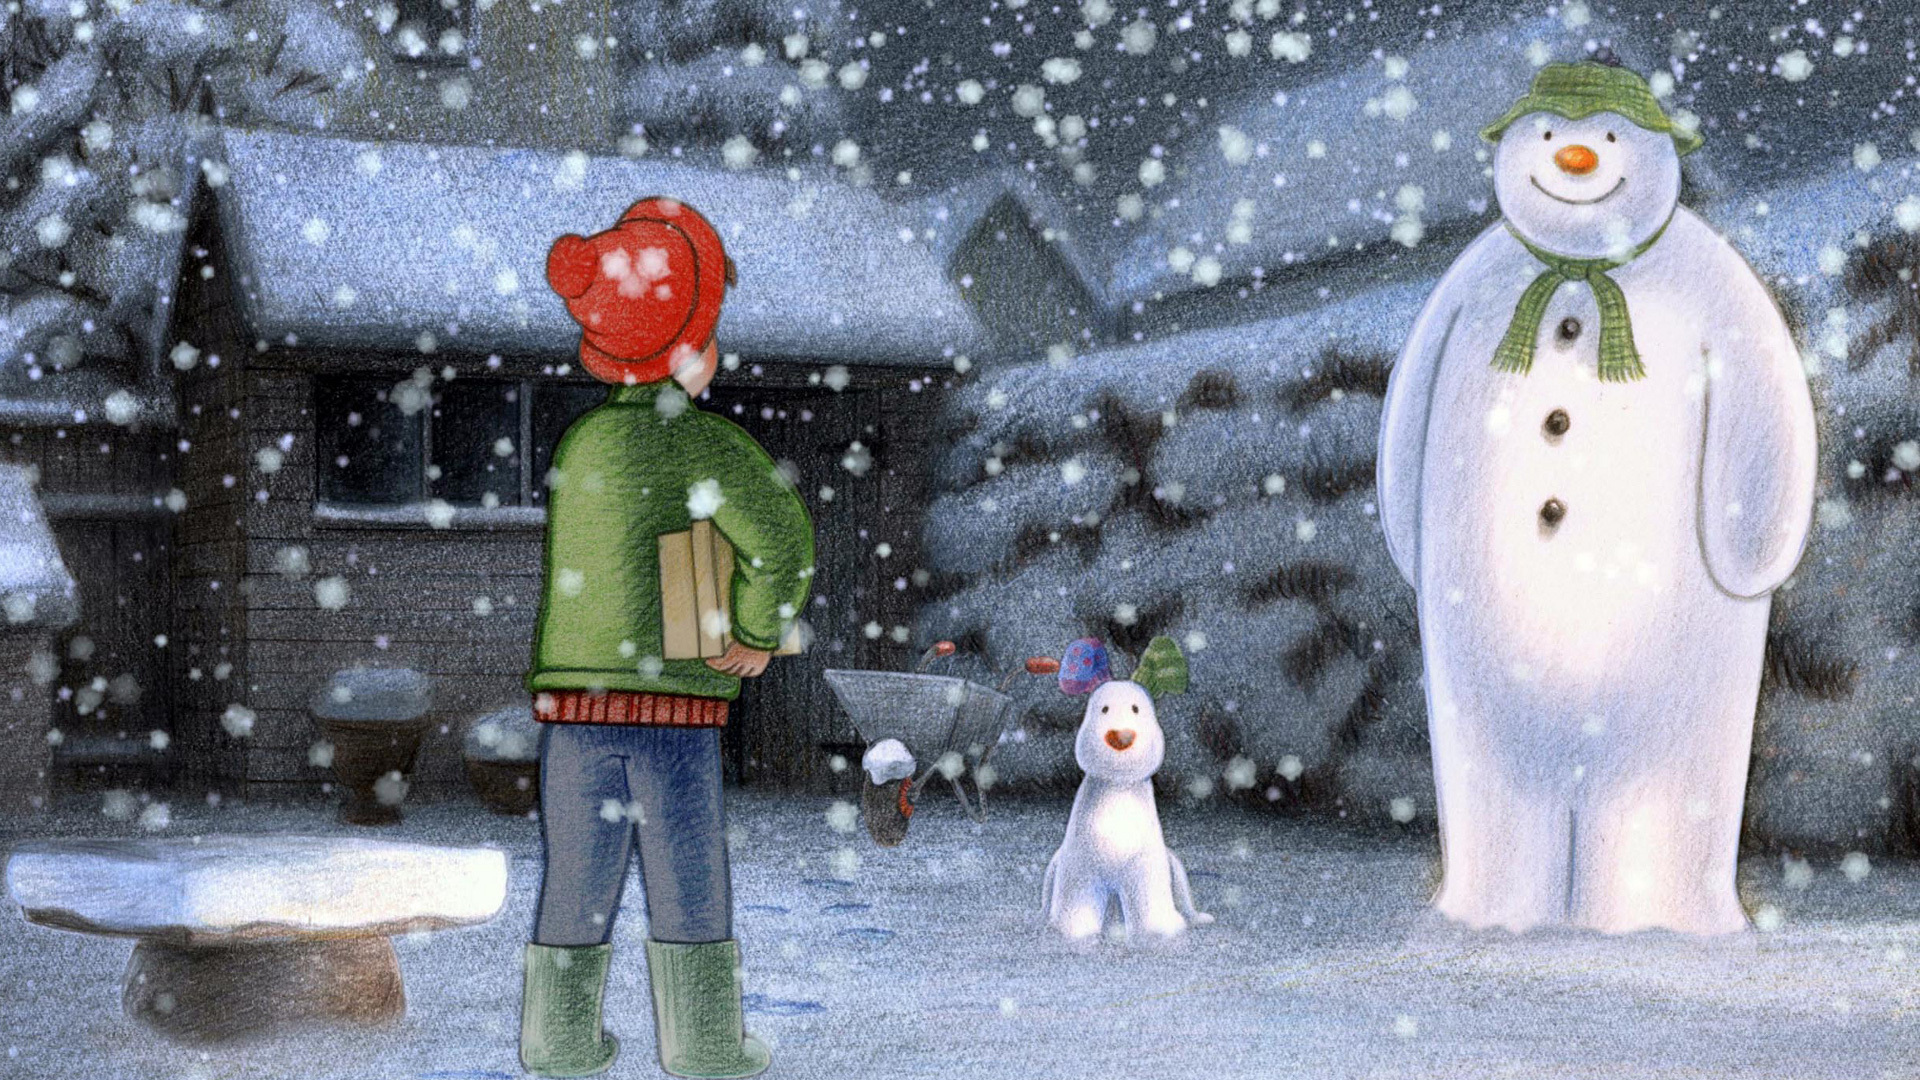 Hindi Movie Wallpapers With Quotes 1 The Snowman And The Snowdog Hd Wallpapers Backgrounds